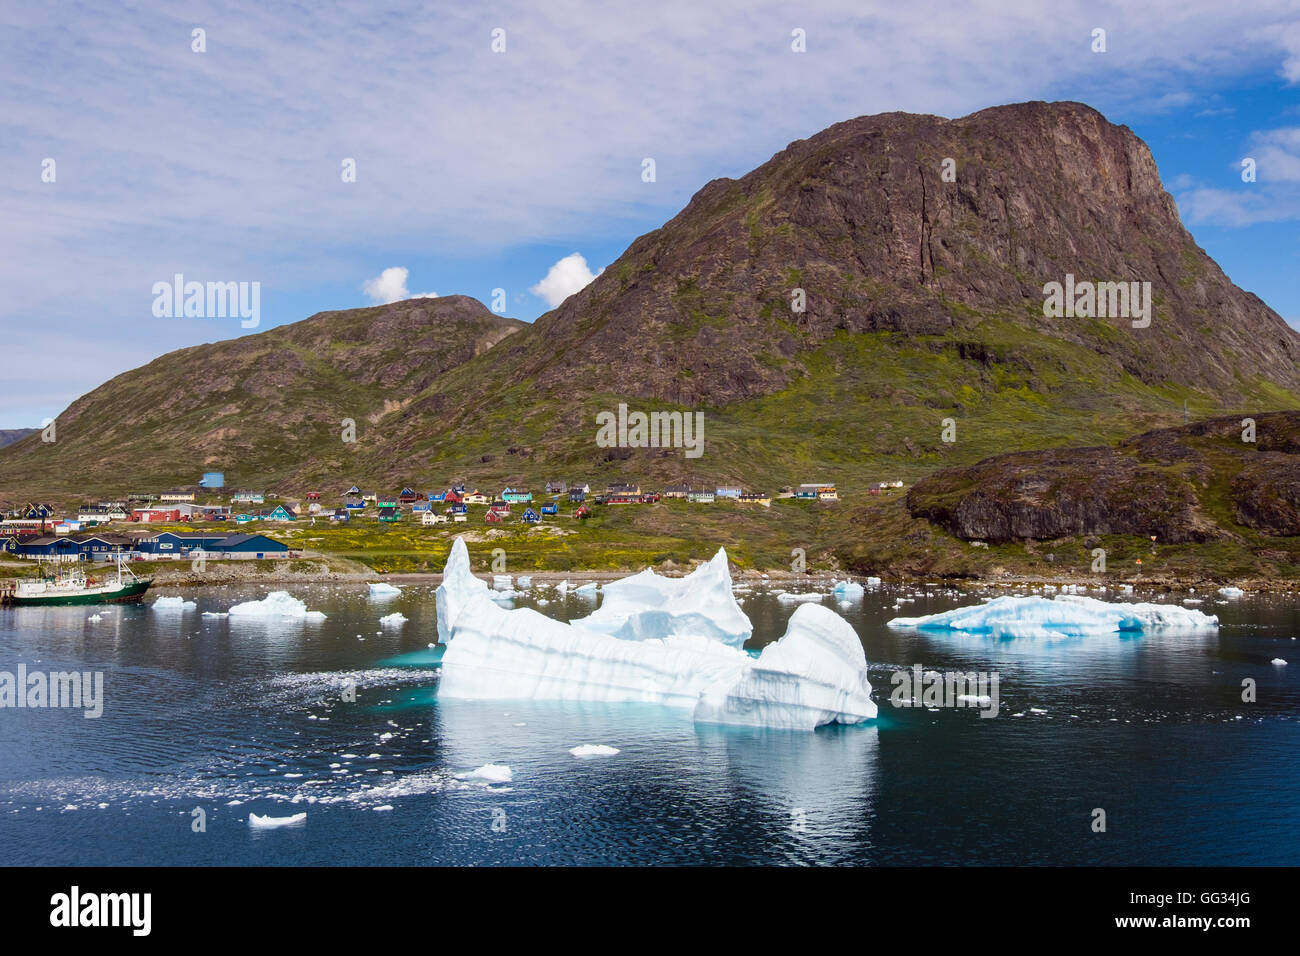 Icebergs from Tunulliarfik fjord floating offshore with view to town below Qaqqarsuaq Fjeld mountain. Narsaq Kujalleq - Stock Image